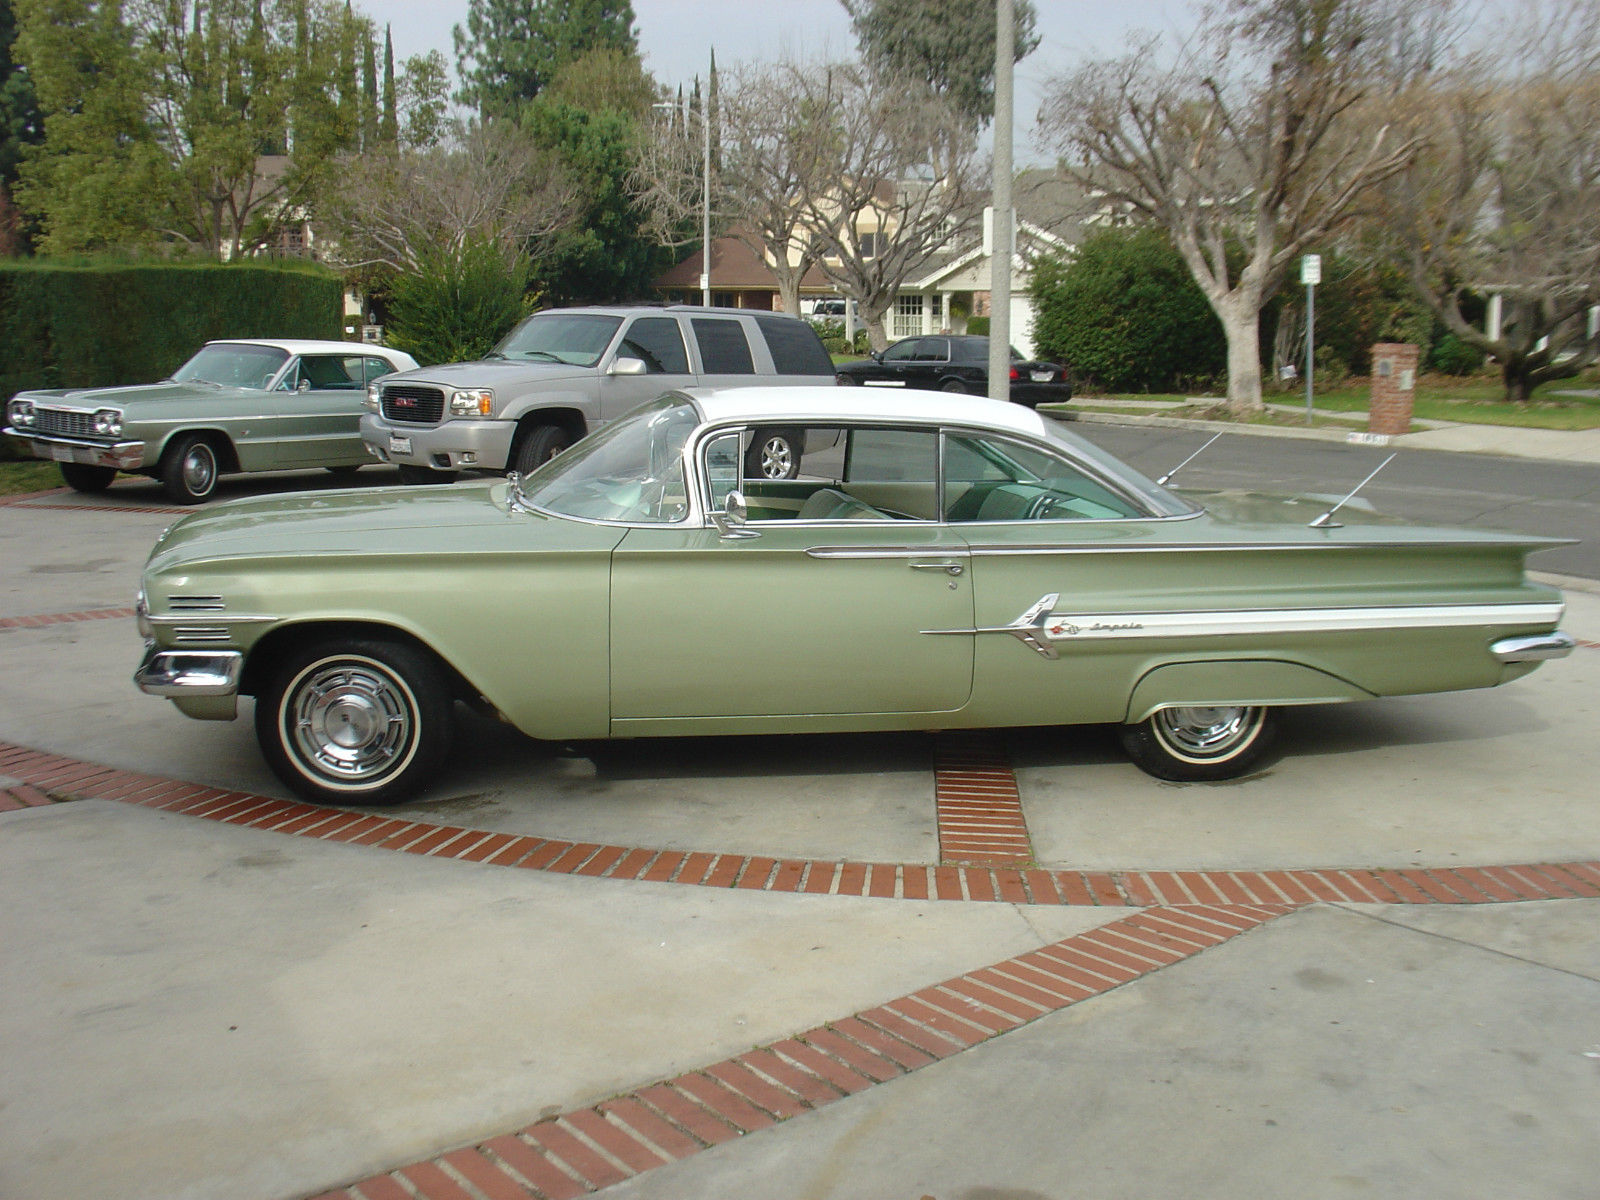 1960 Chevy Impala Coupe Mint Green Ac Car 1958 1959 1961 1962 Ss Chevrolet